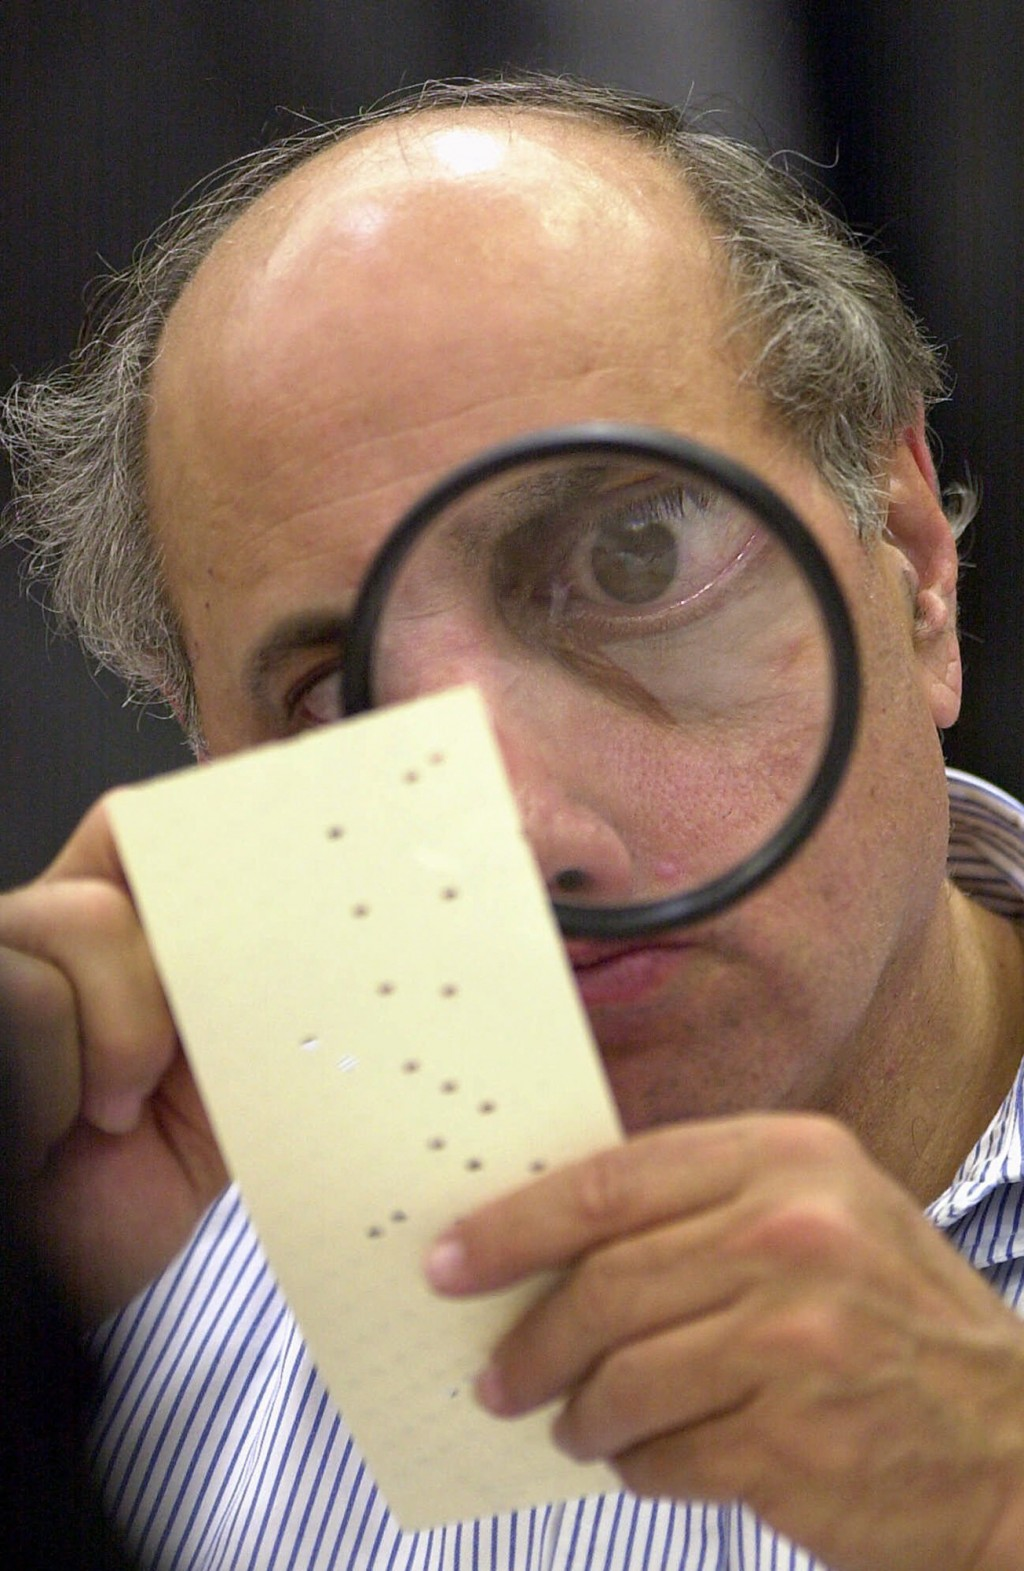 FILE - In this Nov. 24, 2000, file photo, Broward County, Fla., canvassing board member Judge Robert Rosenberg uses a magnifying glass to examine a di...